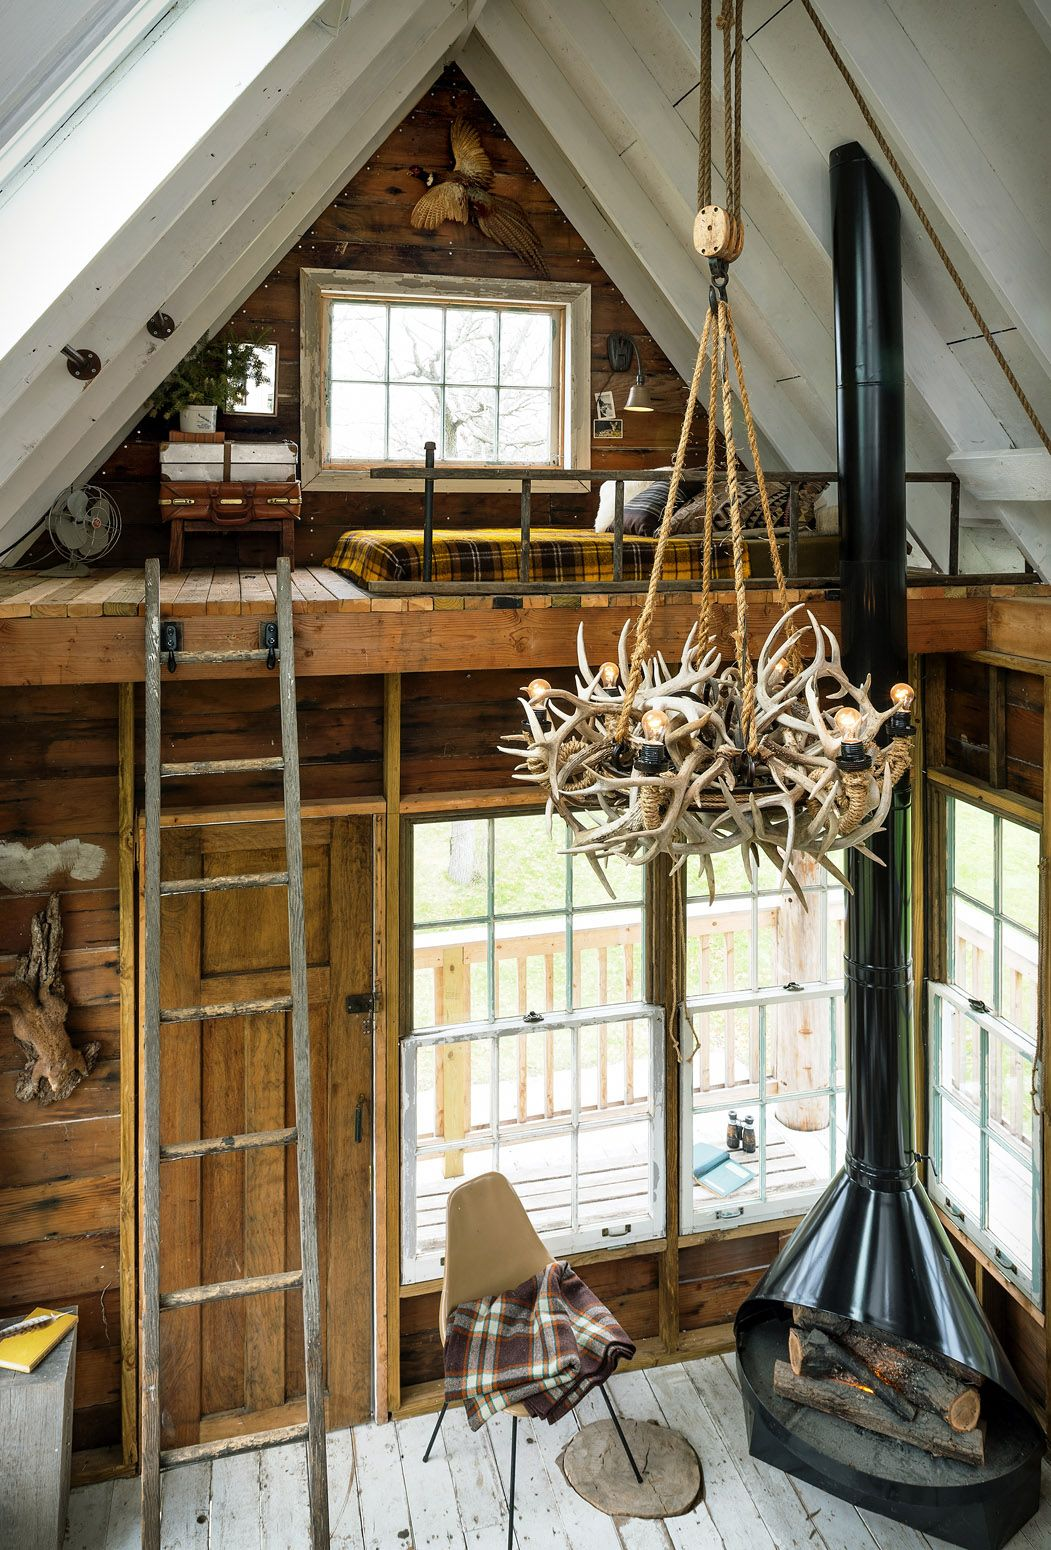 Cool tree houses interior - Find This Pin And More On Green Building The Interior Of A Treehouse